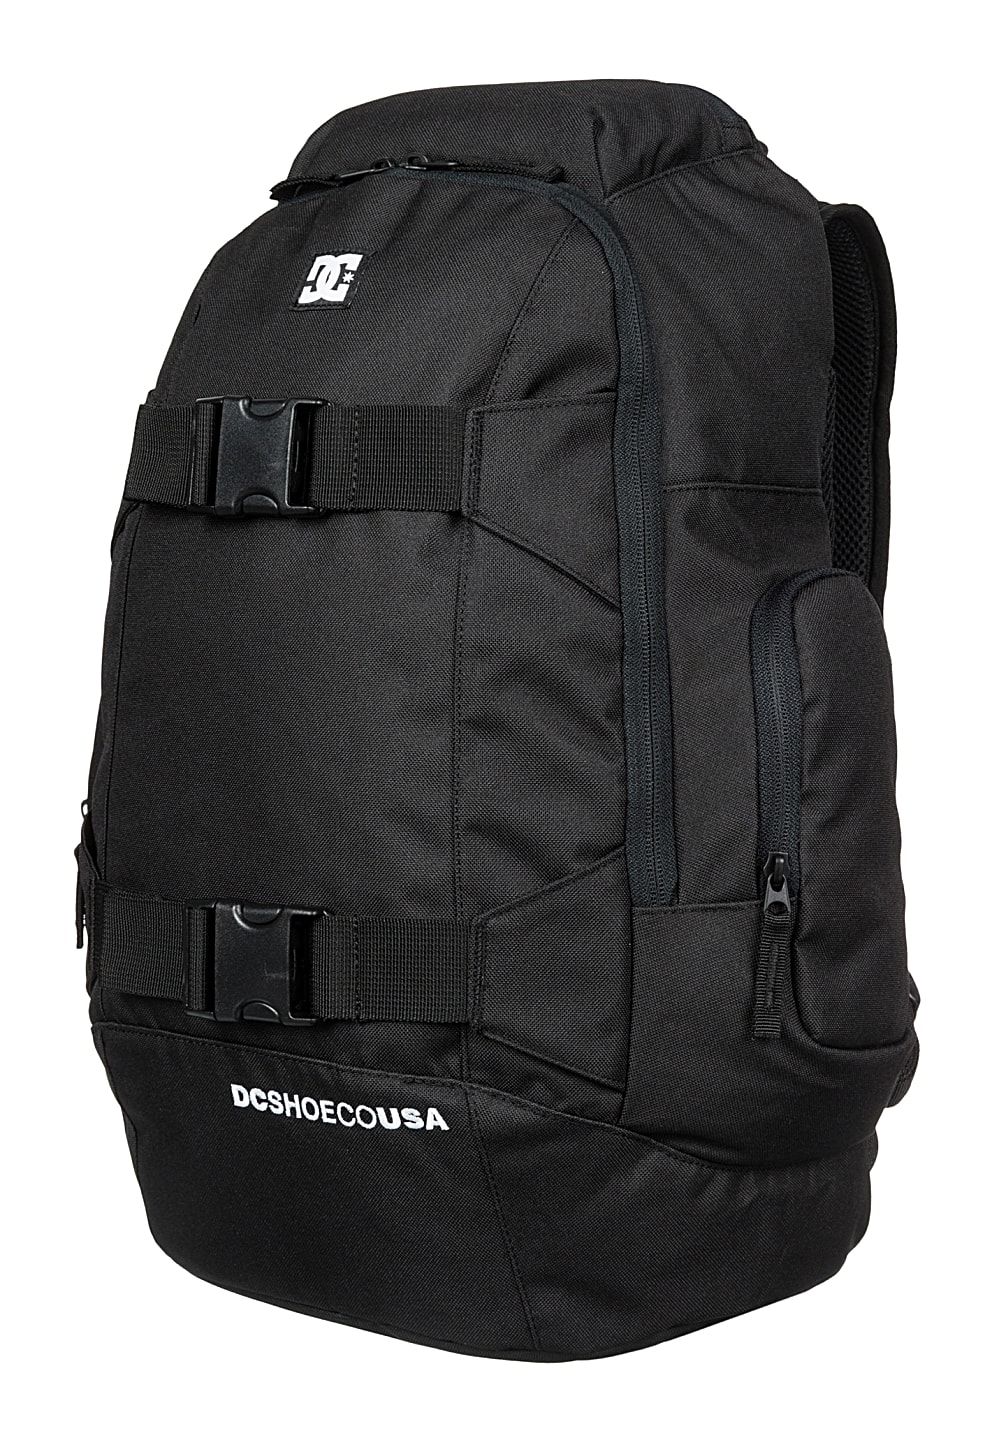 dc wolfbred ii rucksack f r herren schwarz planet sports. Black Bedroom Furniture Sets. Home Design Ideas